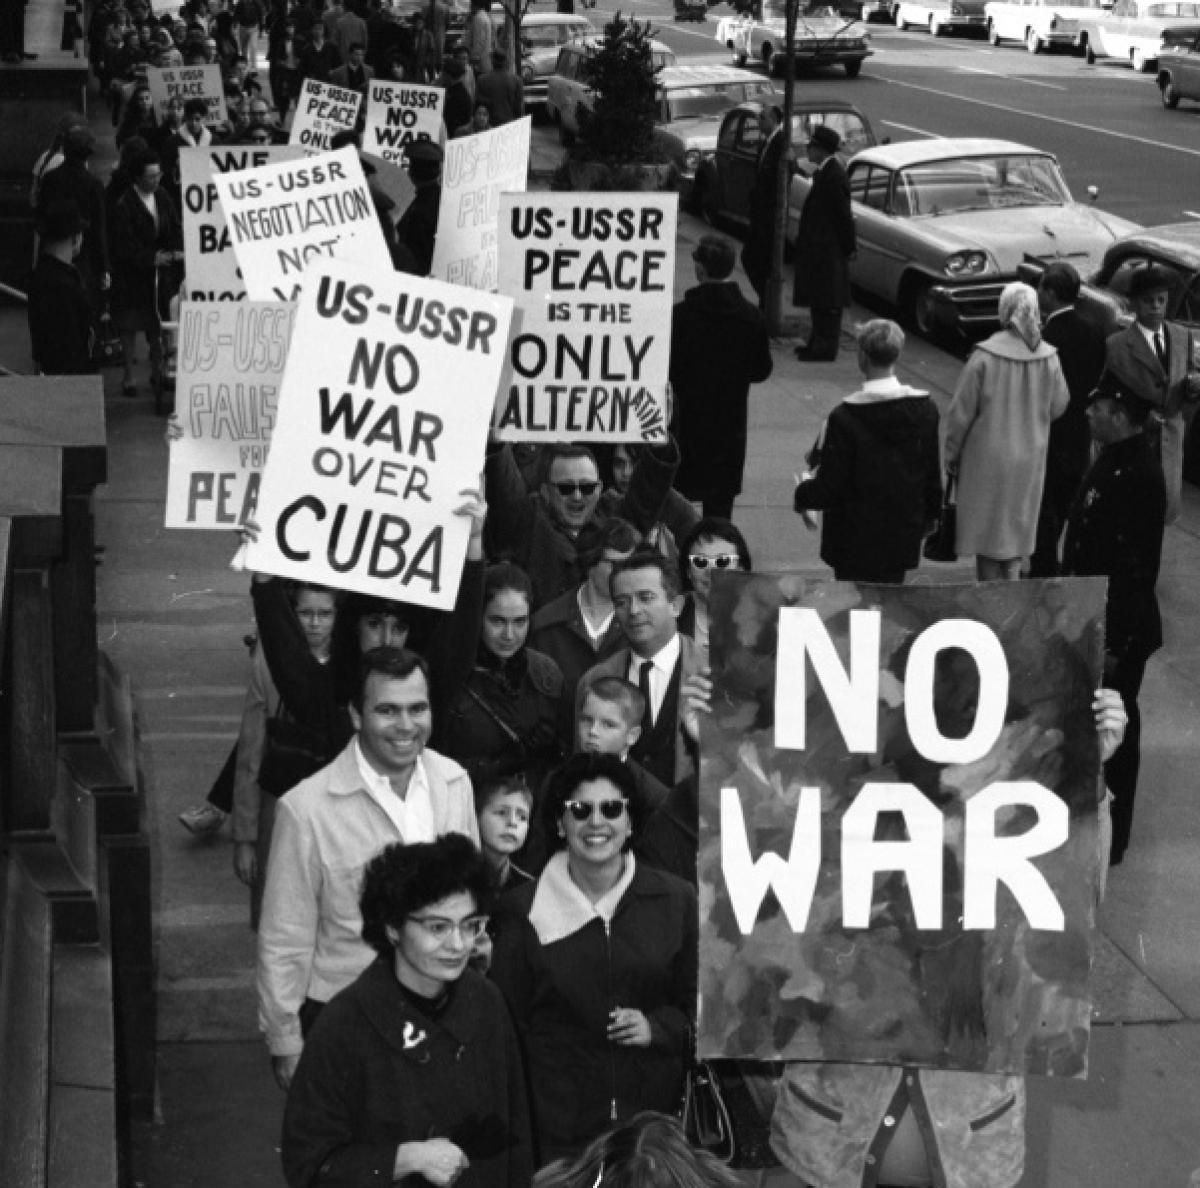 the cuban missile crisis soviet Cuban missile crisis 50 years on: from the archive how a deadly standoff 50 years ago between the us and soviet union over cuba took the world to the brink of nuclear war published: 14 oct 2012.